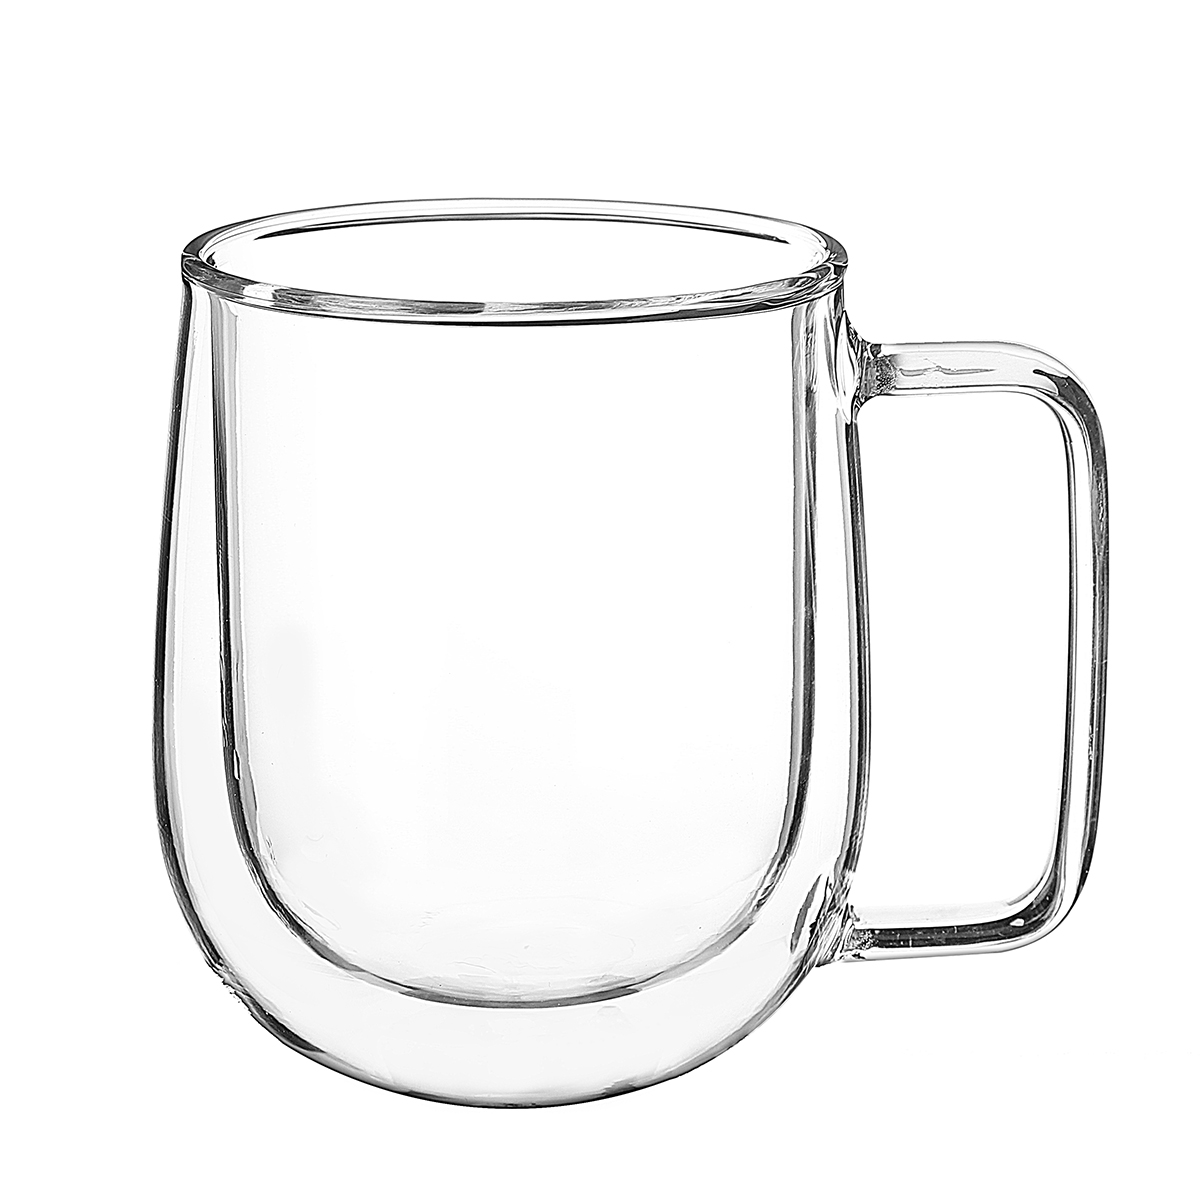 e021a5d1df2 300ml glass coffee tea cup heat resistant double layer glass handle ...